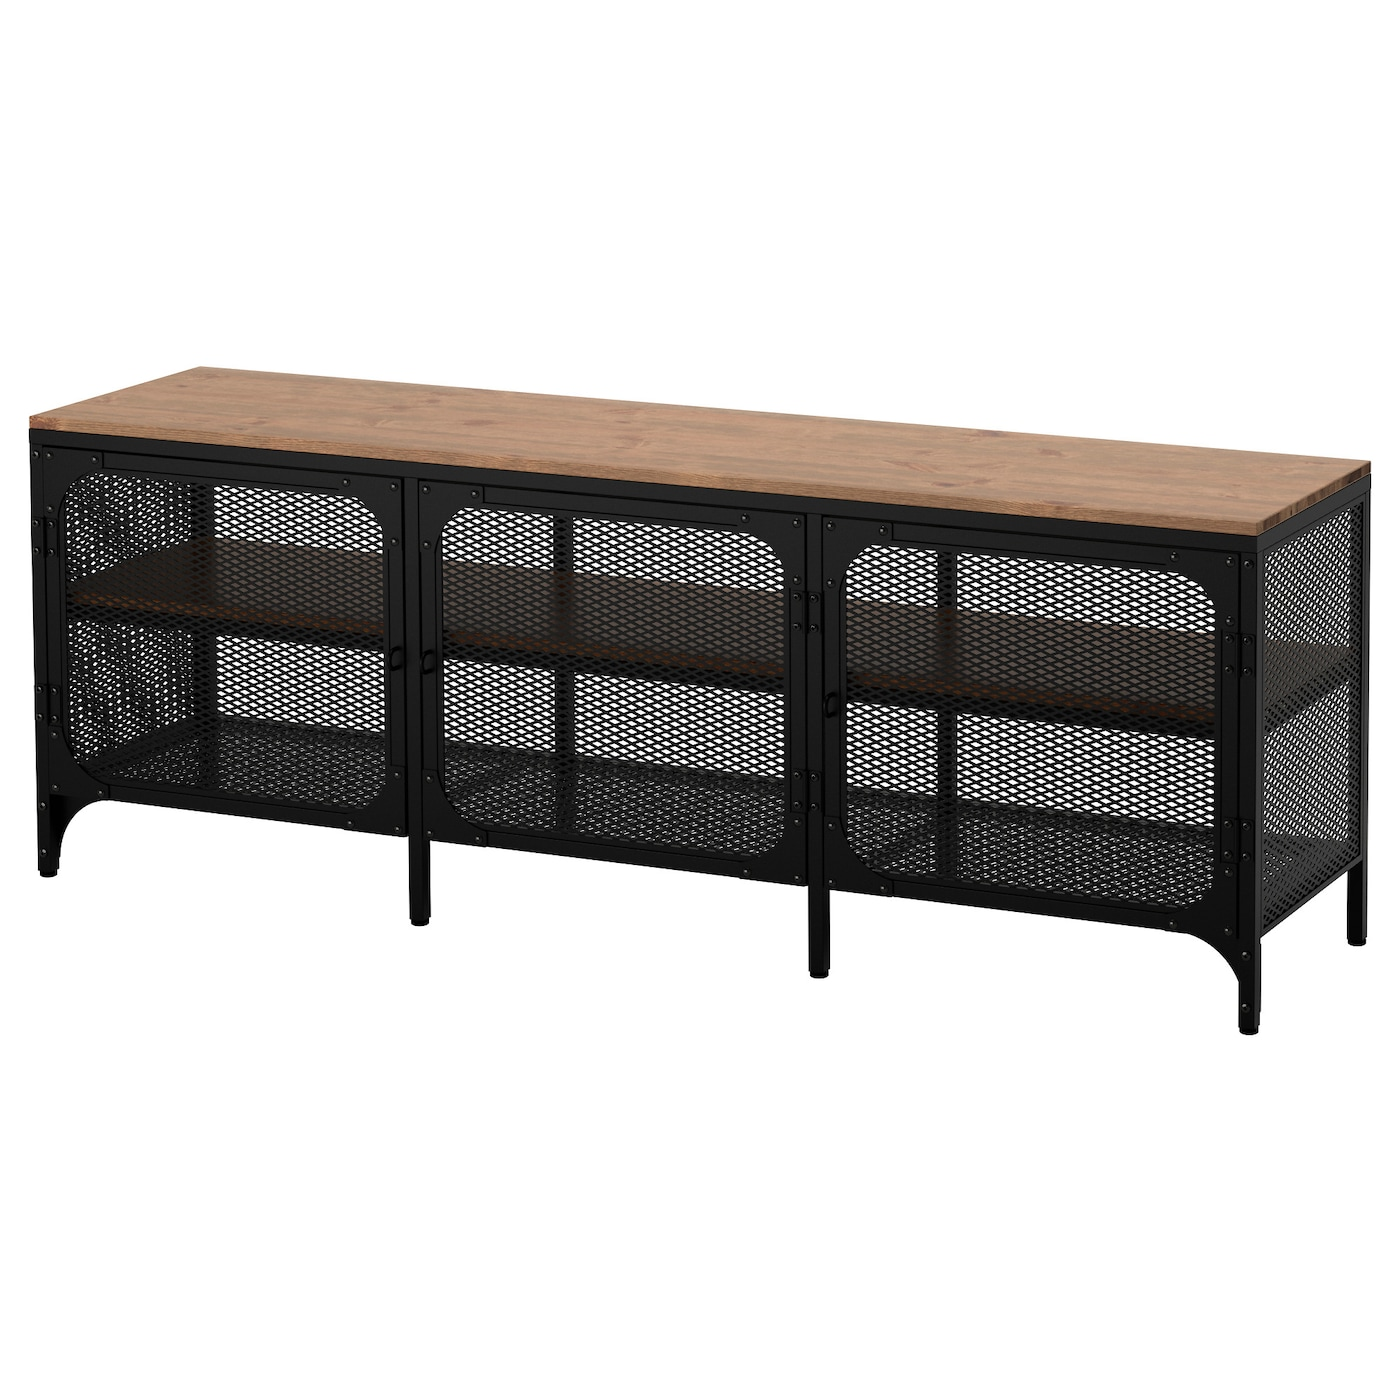 Fj Llbo Tv Bench Black 150×54 Cm Ikea # Meuble Tv Fjallbo